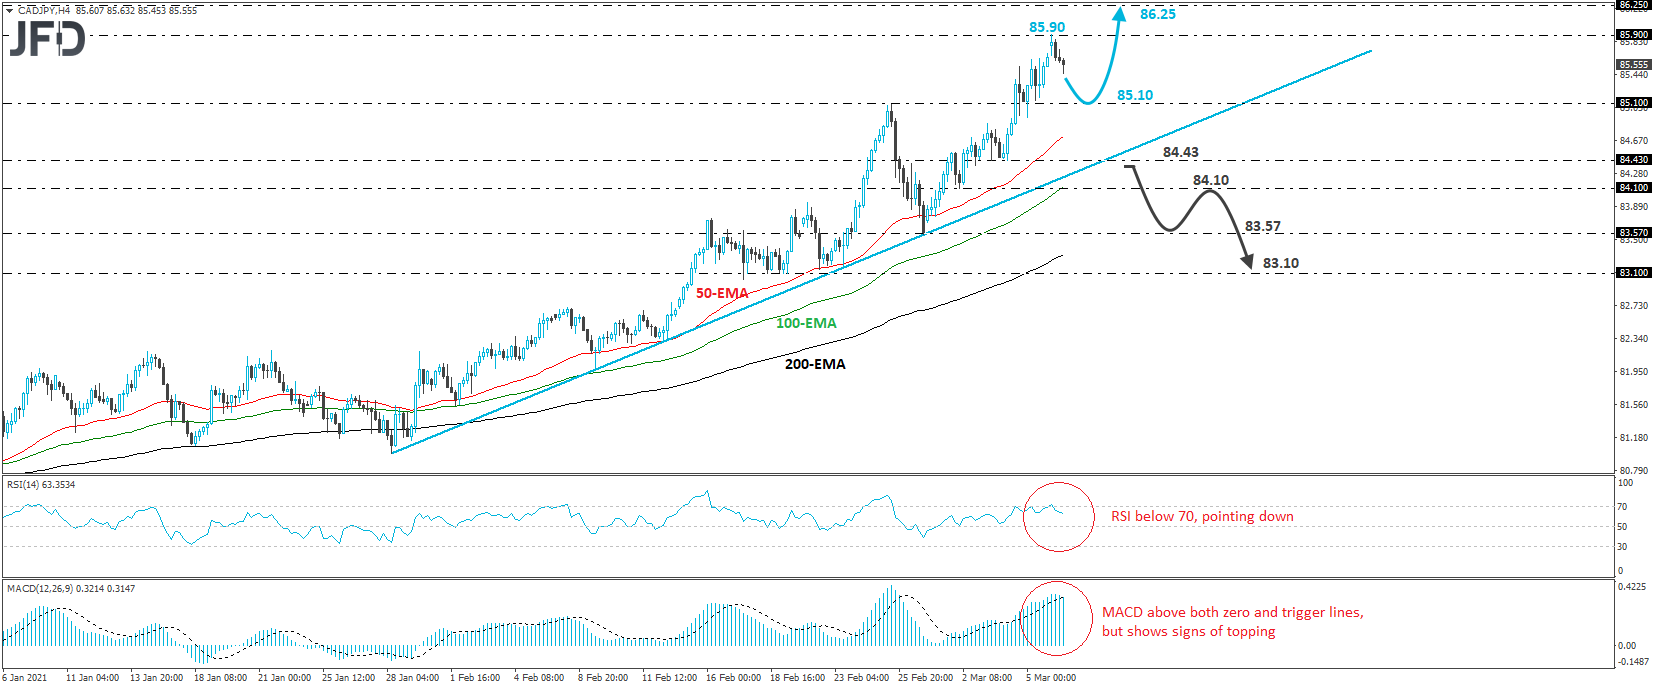 CAD/JPY 4-hour chart technical analysis